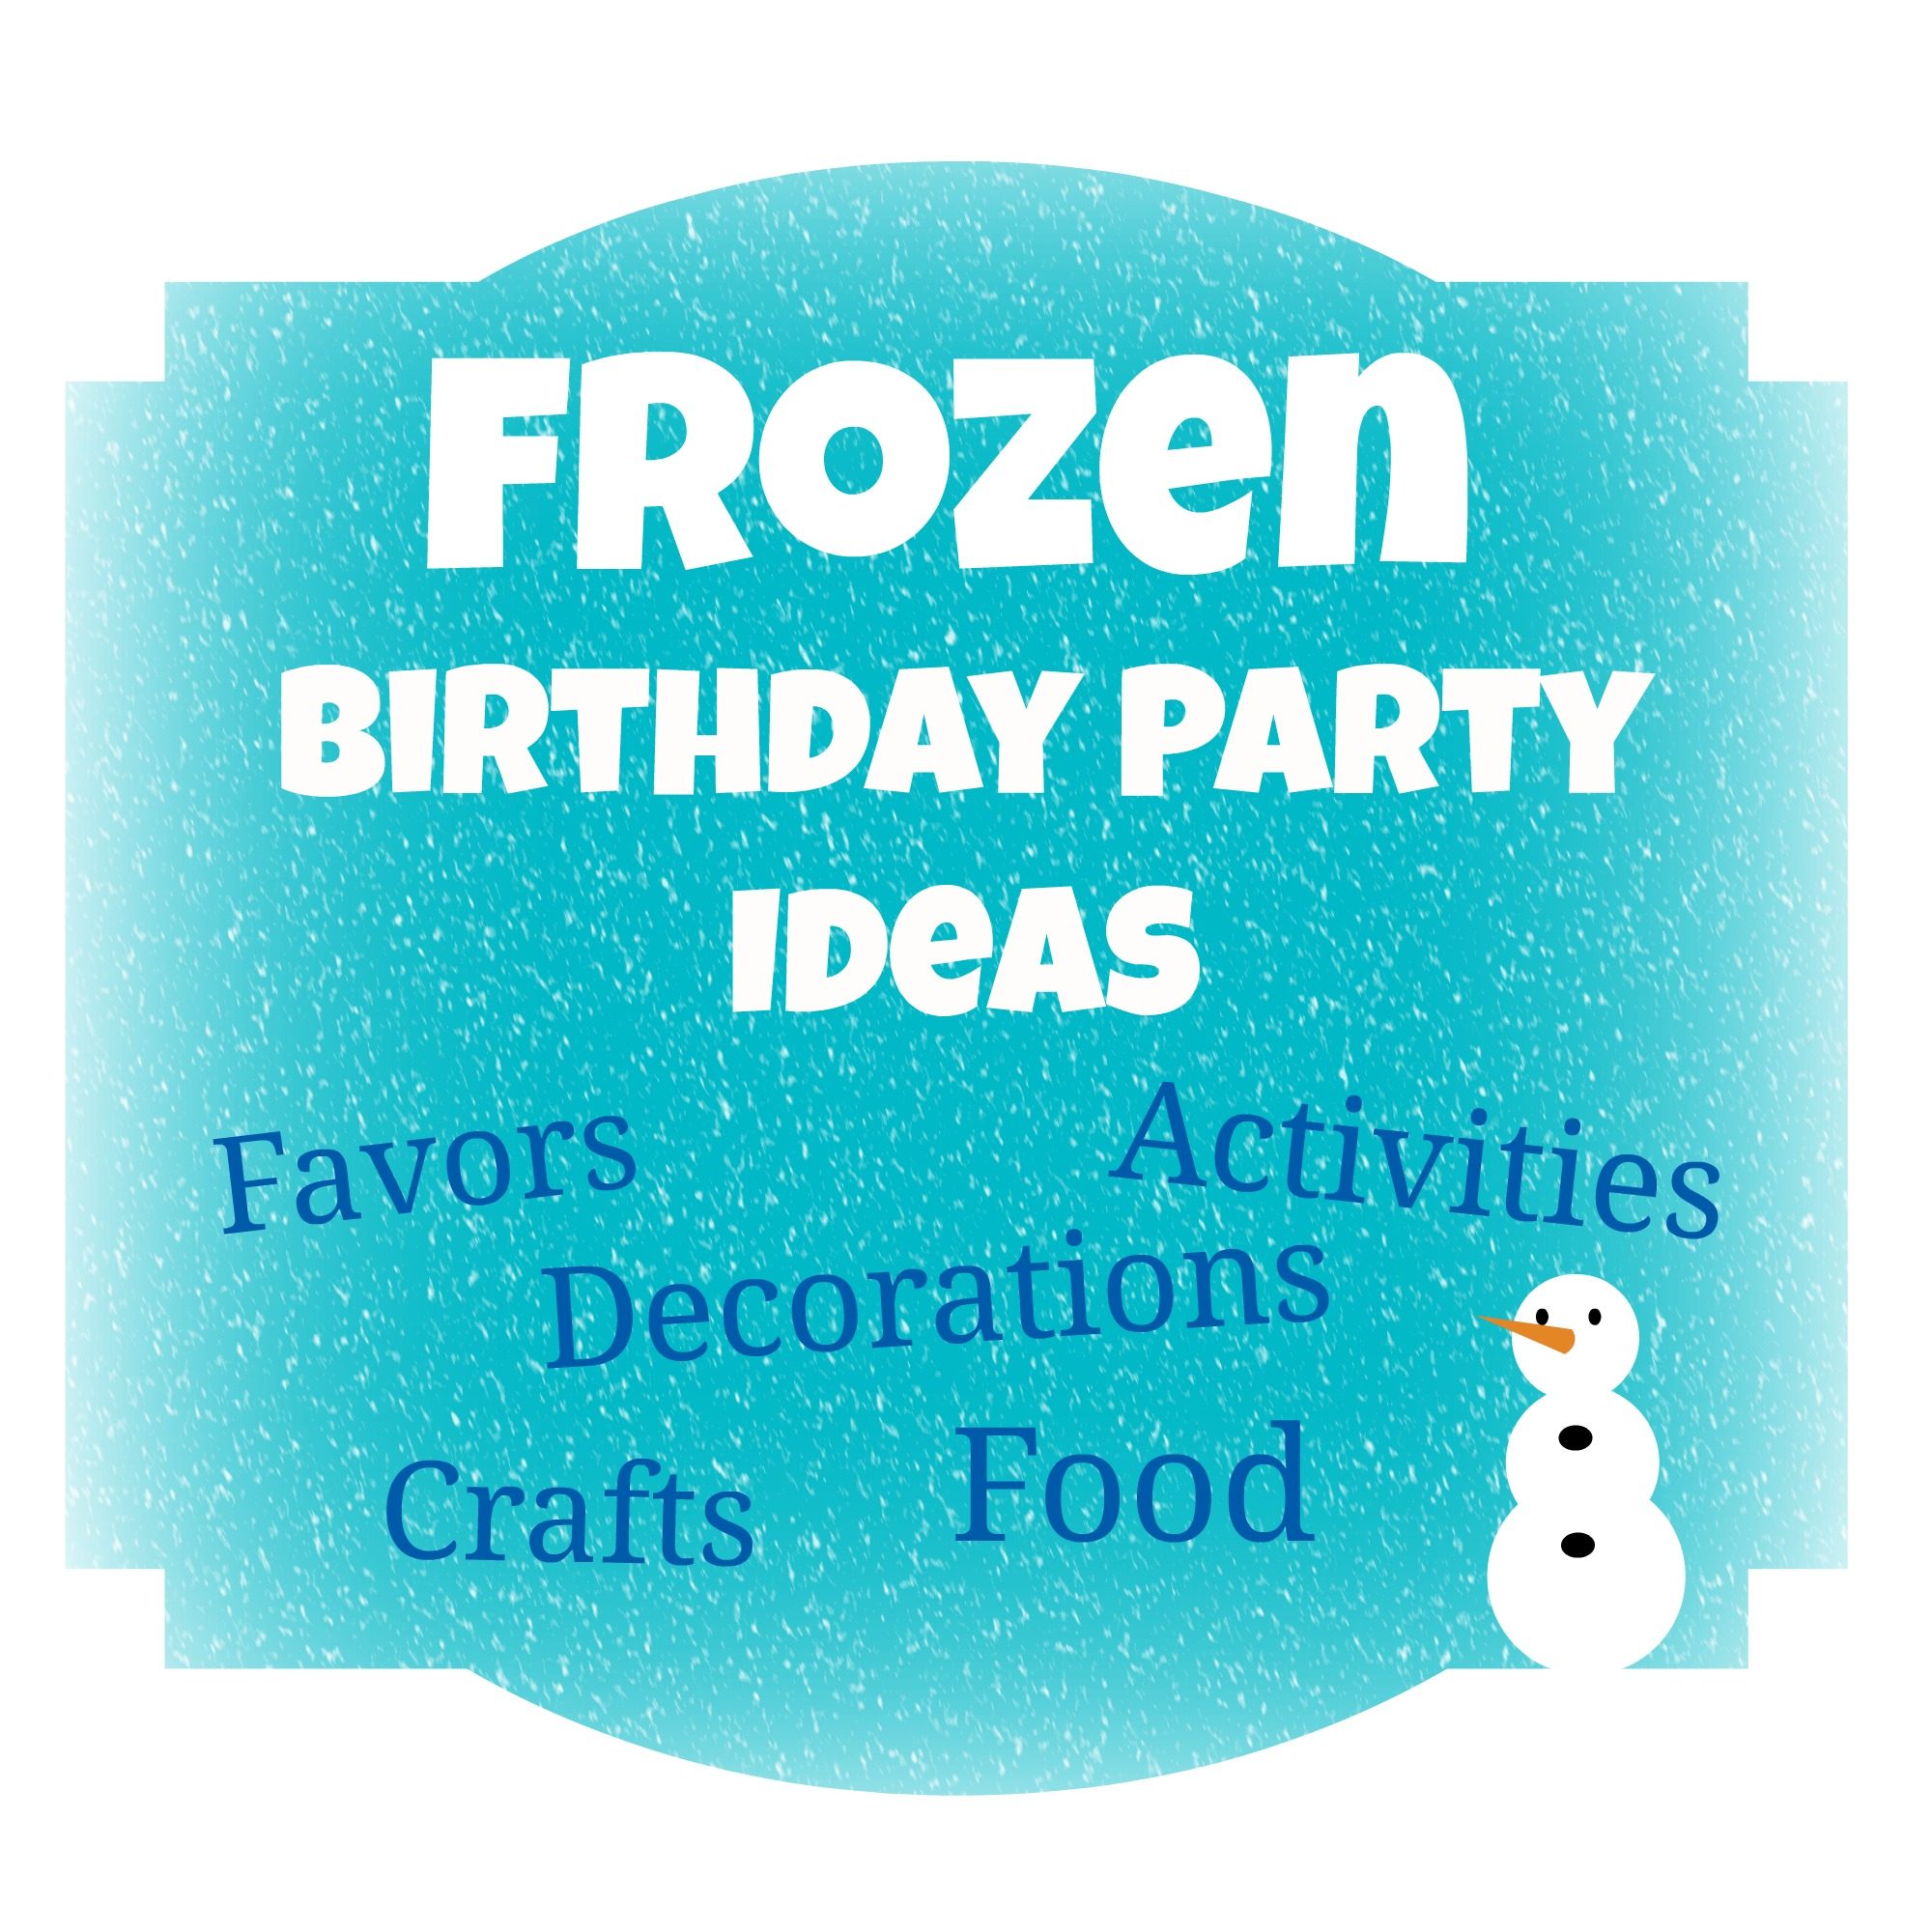 Disneys Frozen Birthday Party Ideas events to CELEBRATE